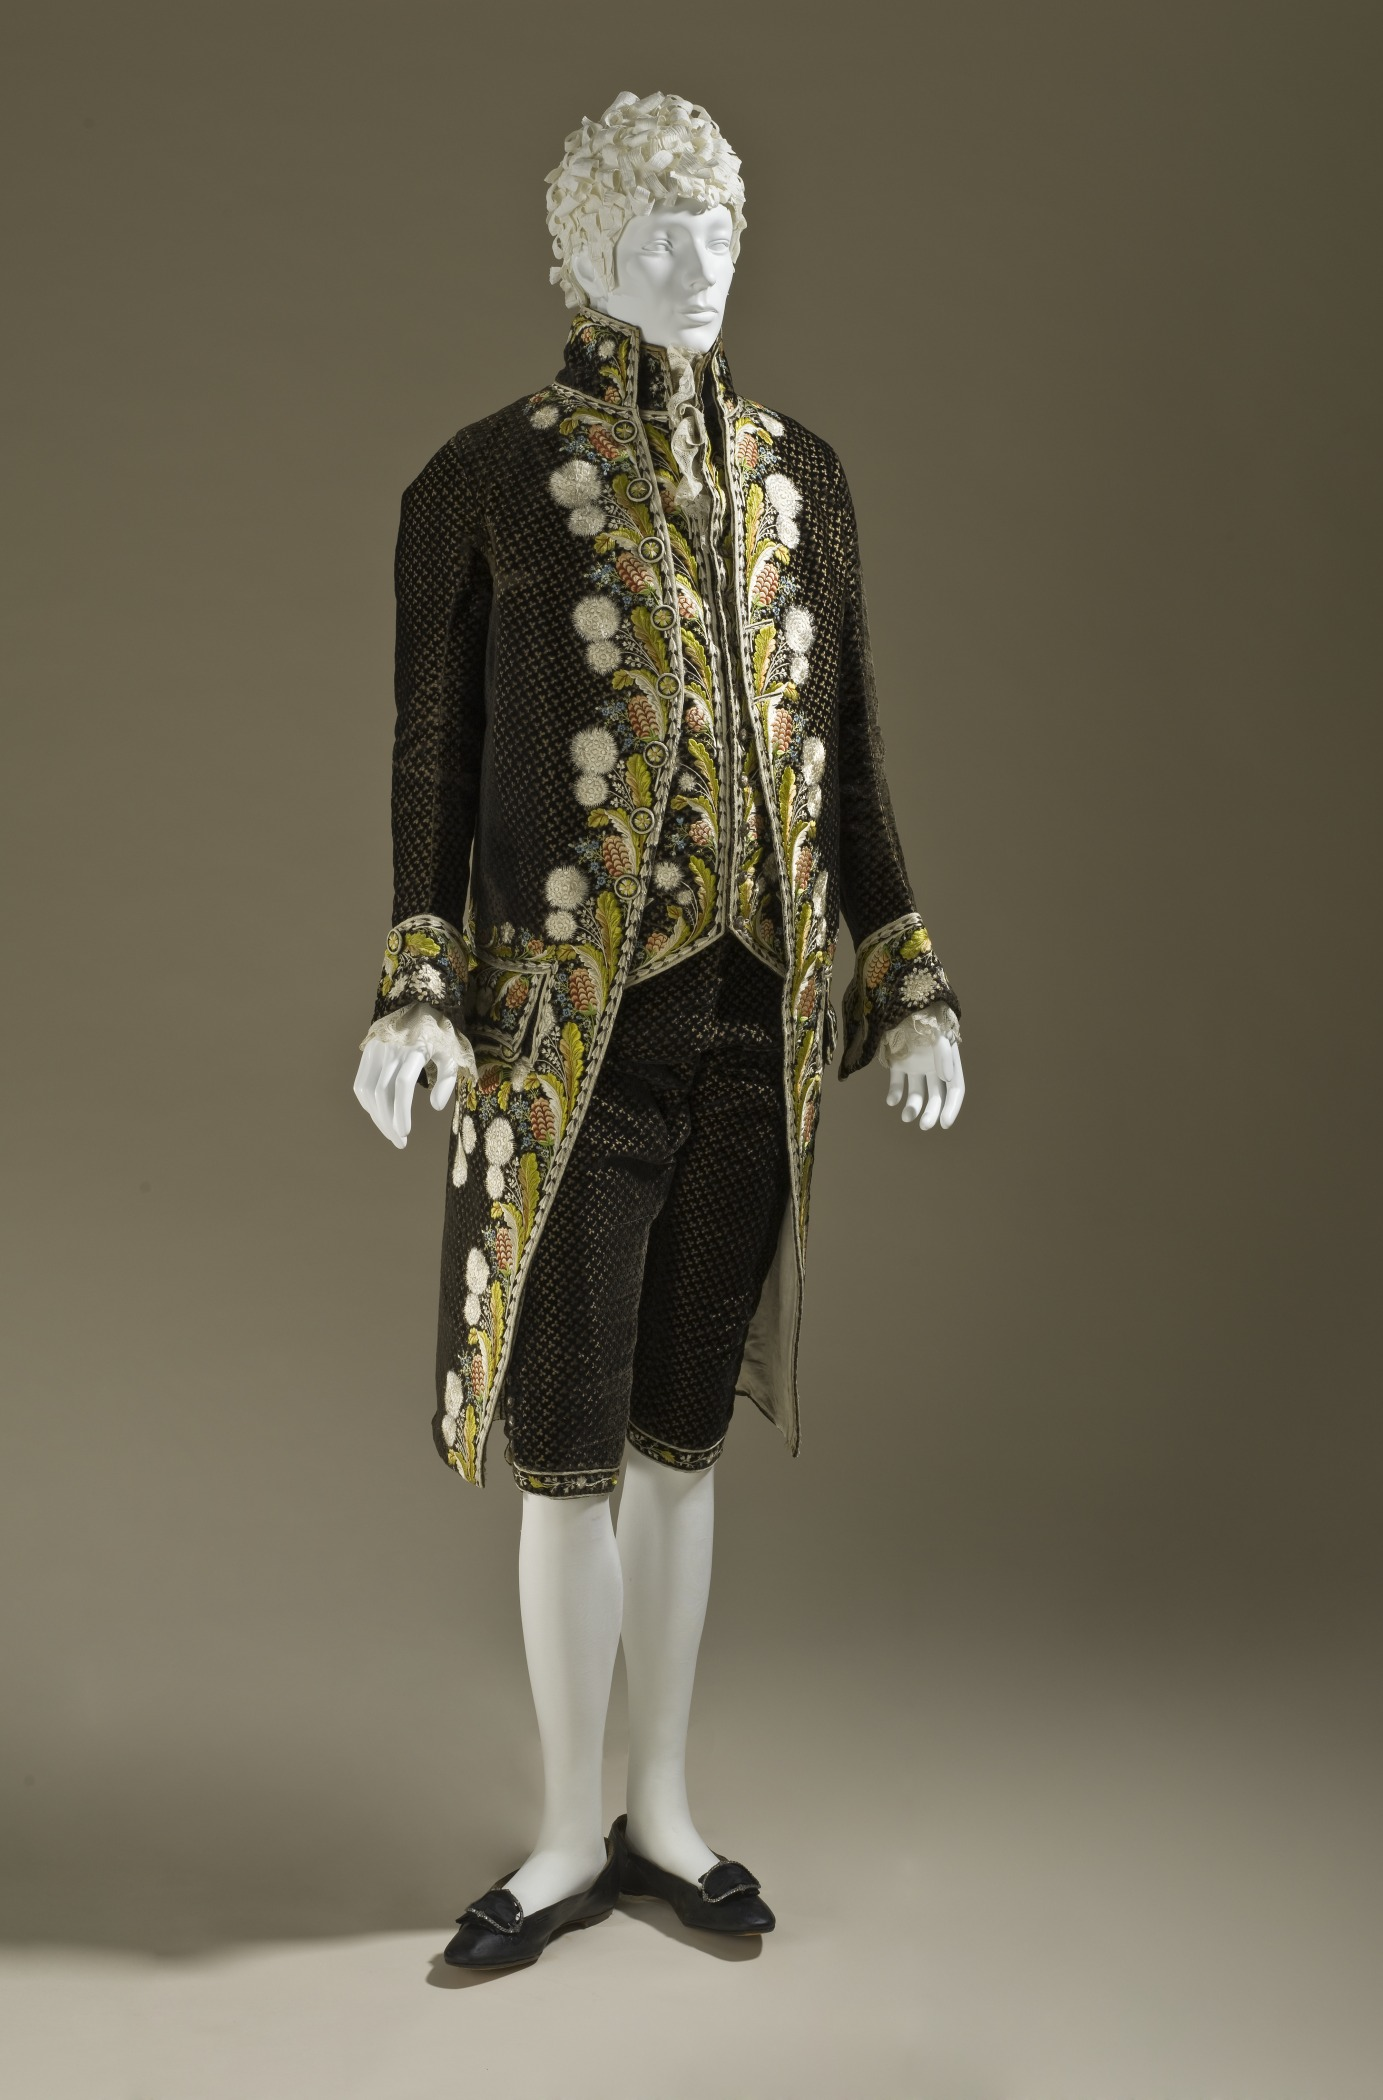 c. 1800. Man's ensemble. Silk cut and voided velvet on plain-weave foundation with supplementary weft-float patterning and silk embroidery. LACMA